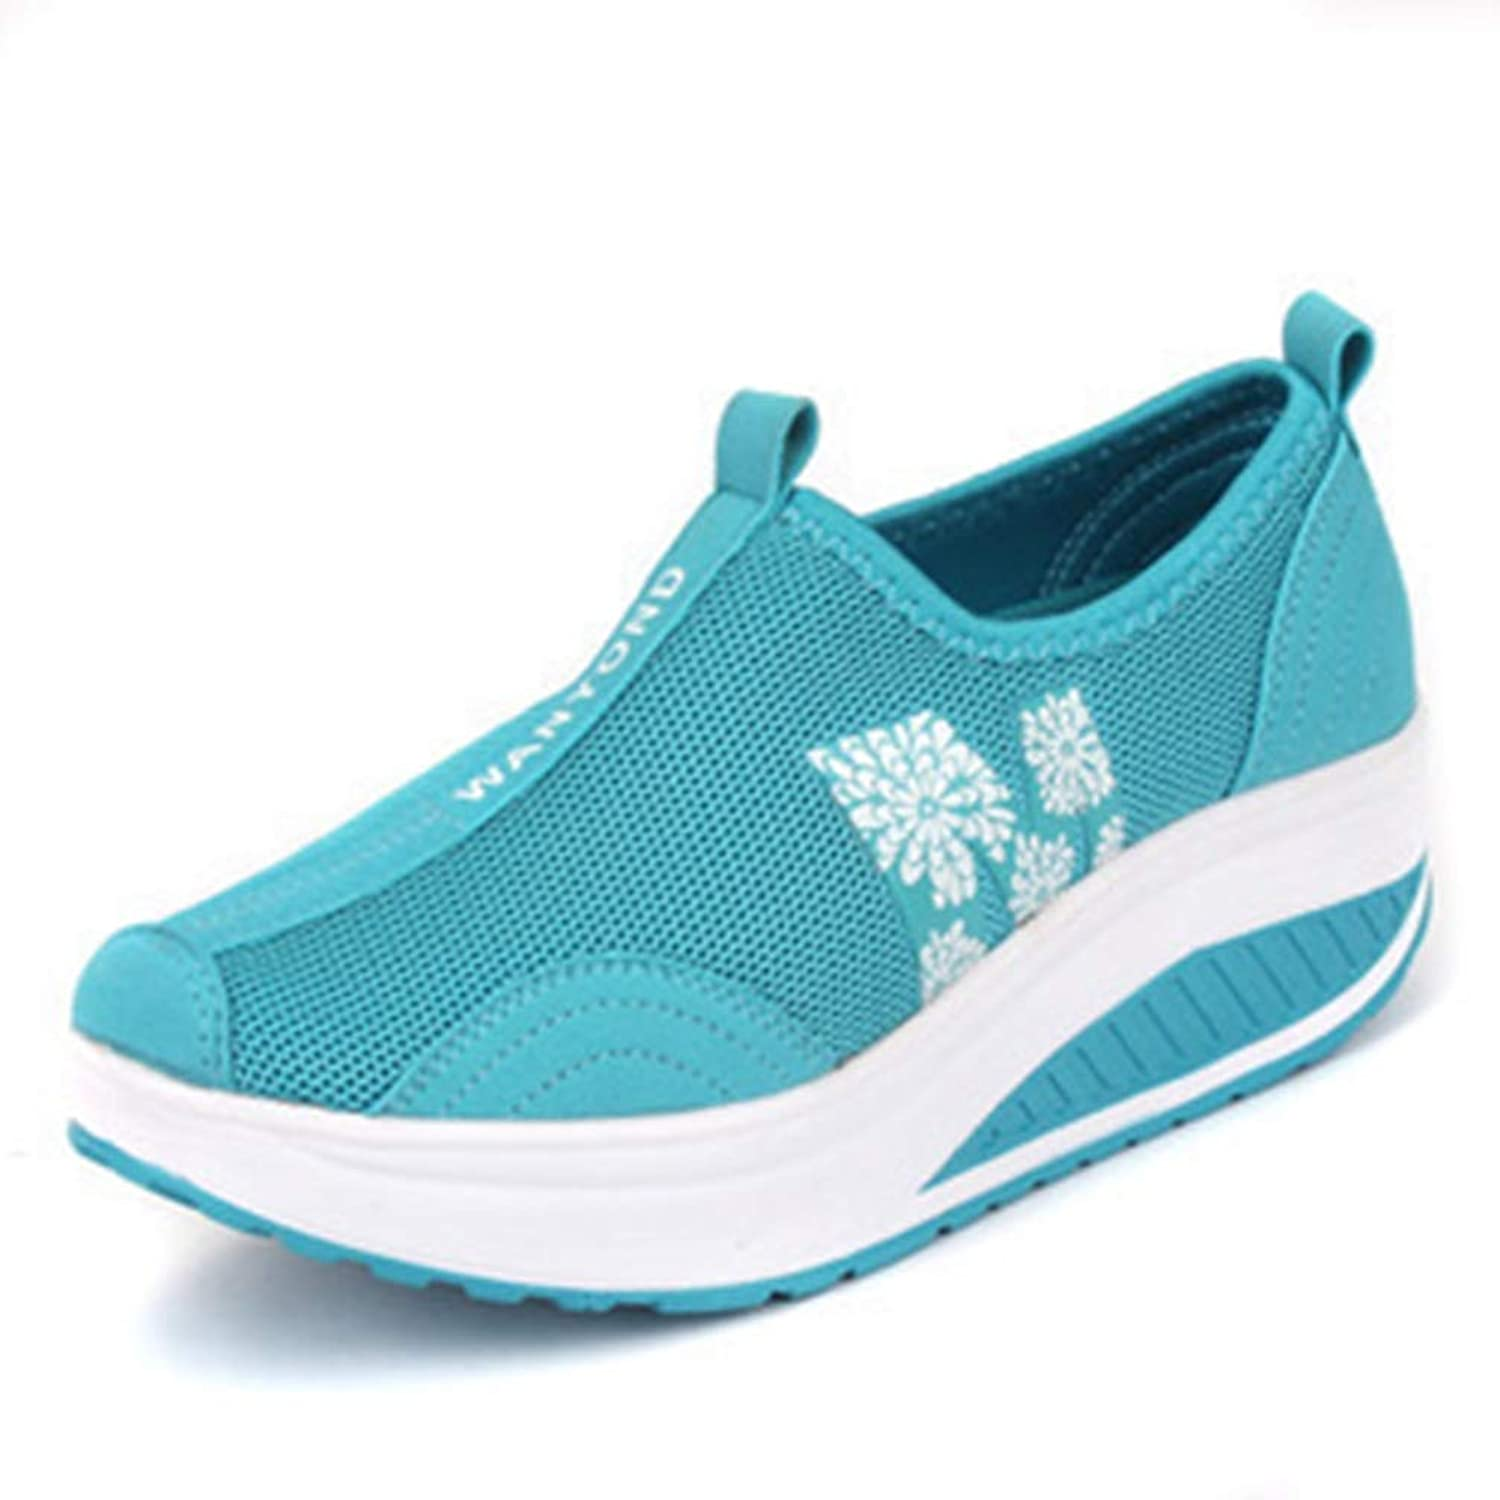 Gcanwea Women Sneakers White Black Platform Womens Casual shoes Ladies Basket Femme Wedges Trainers Zapatillas bluee 5 M US